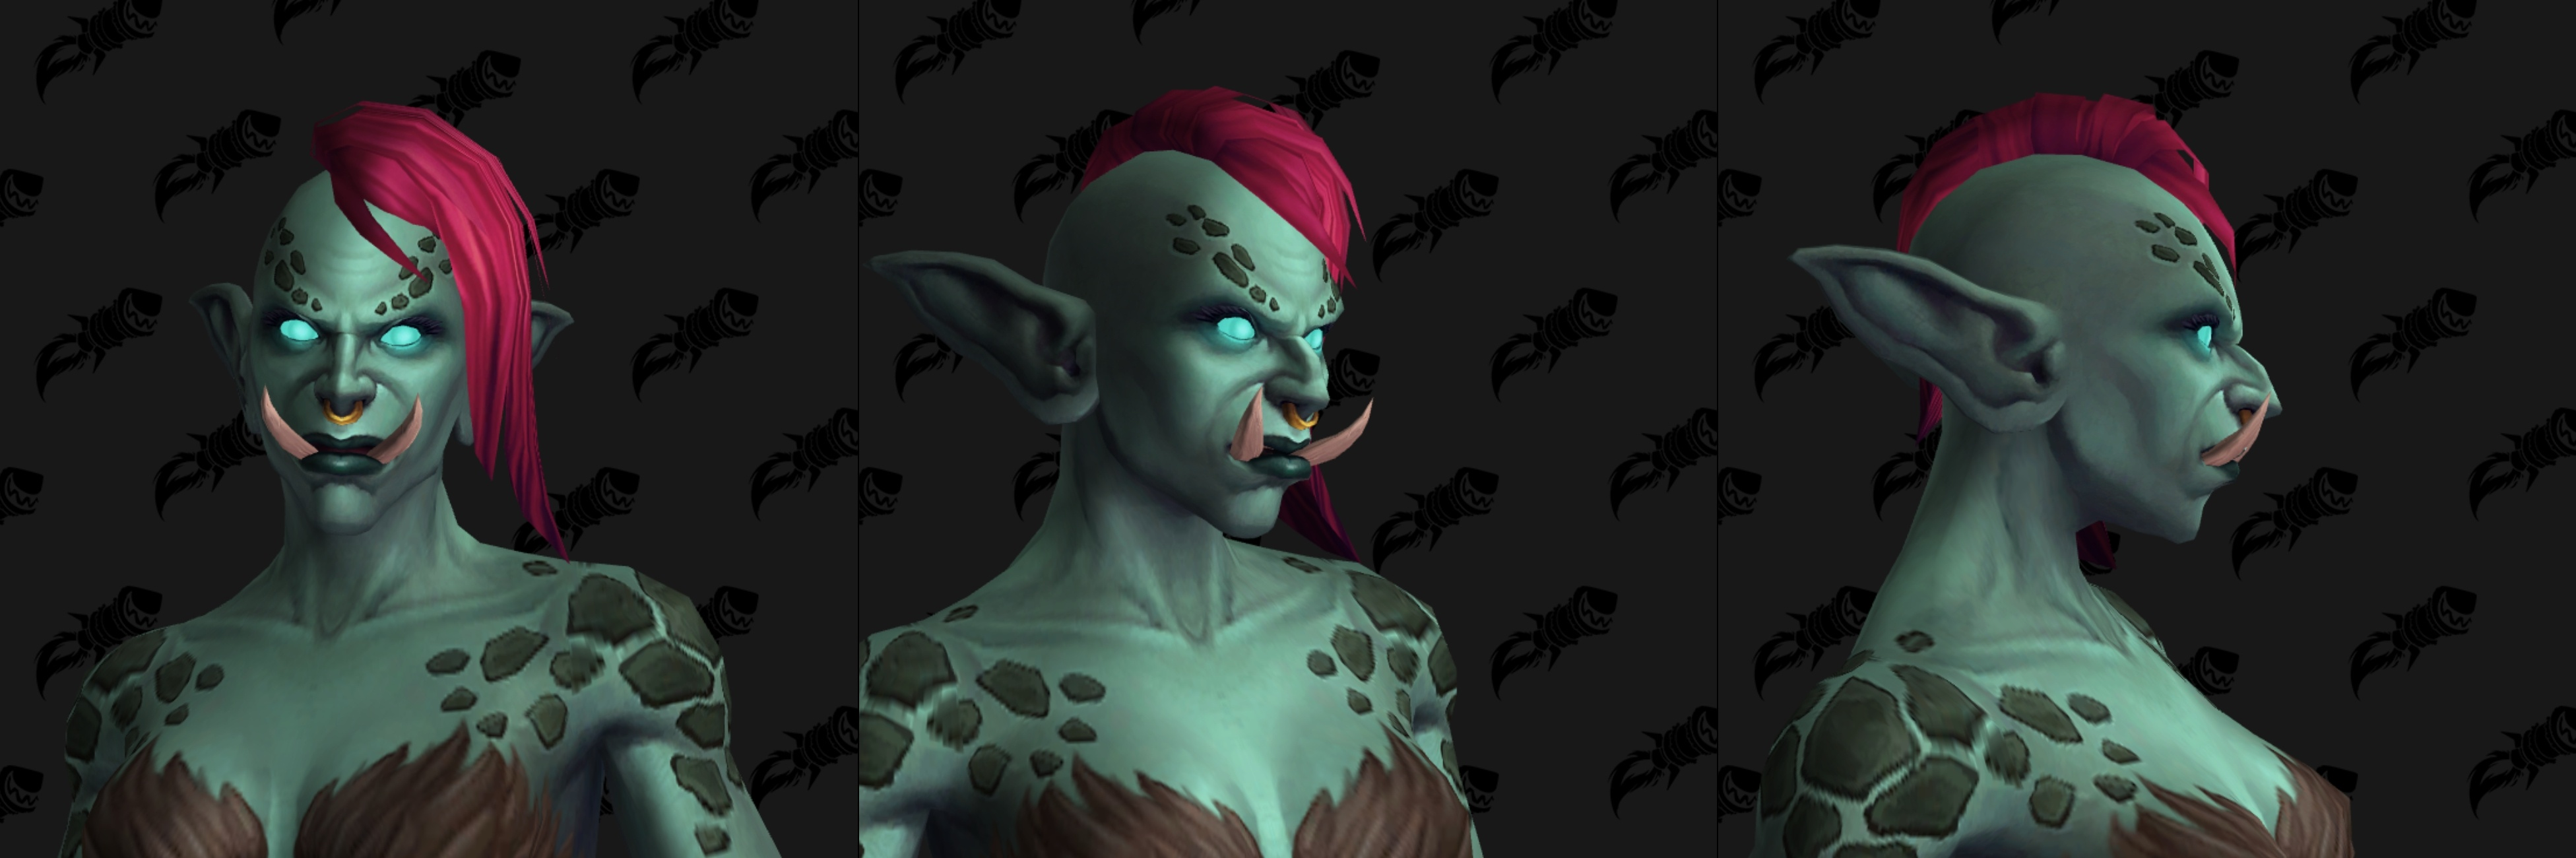 Zandalari Troll Allied Race - Guides - Wowhead